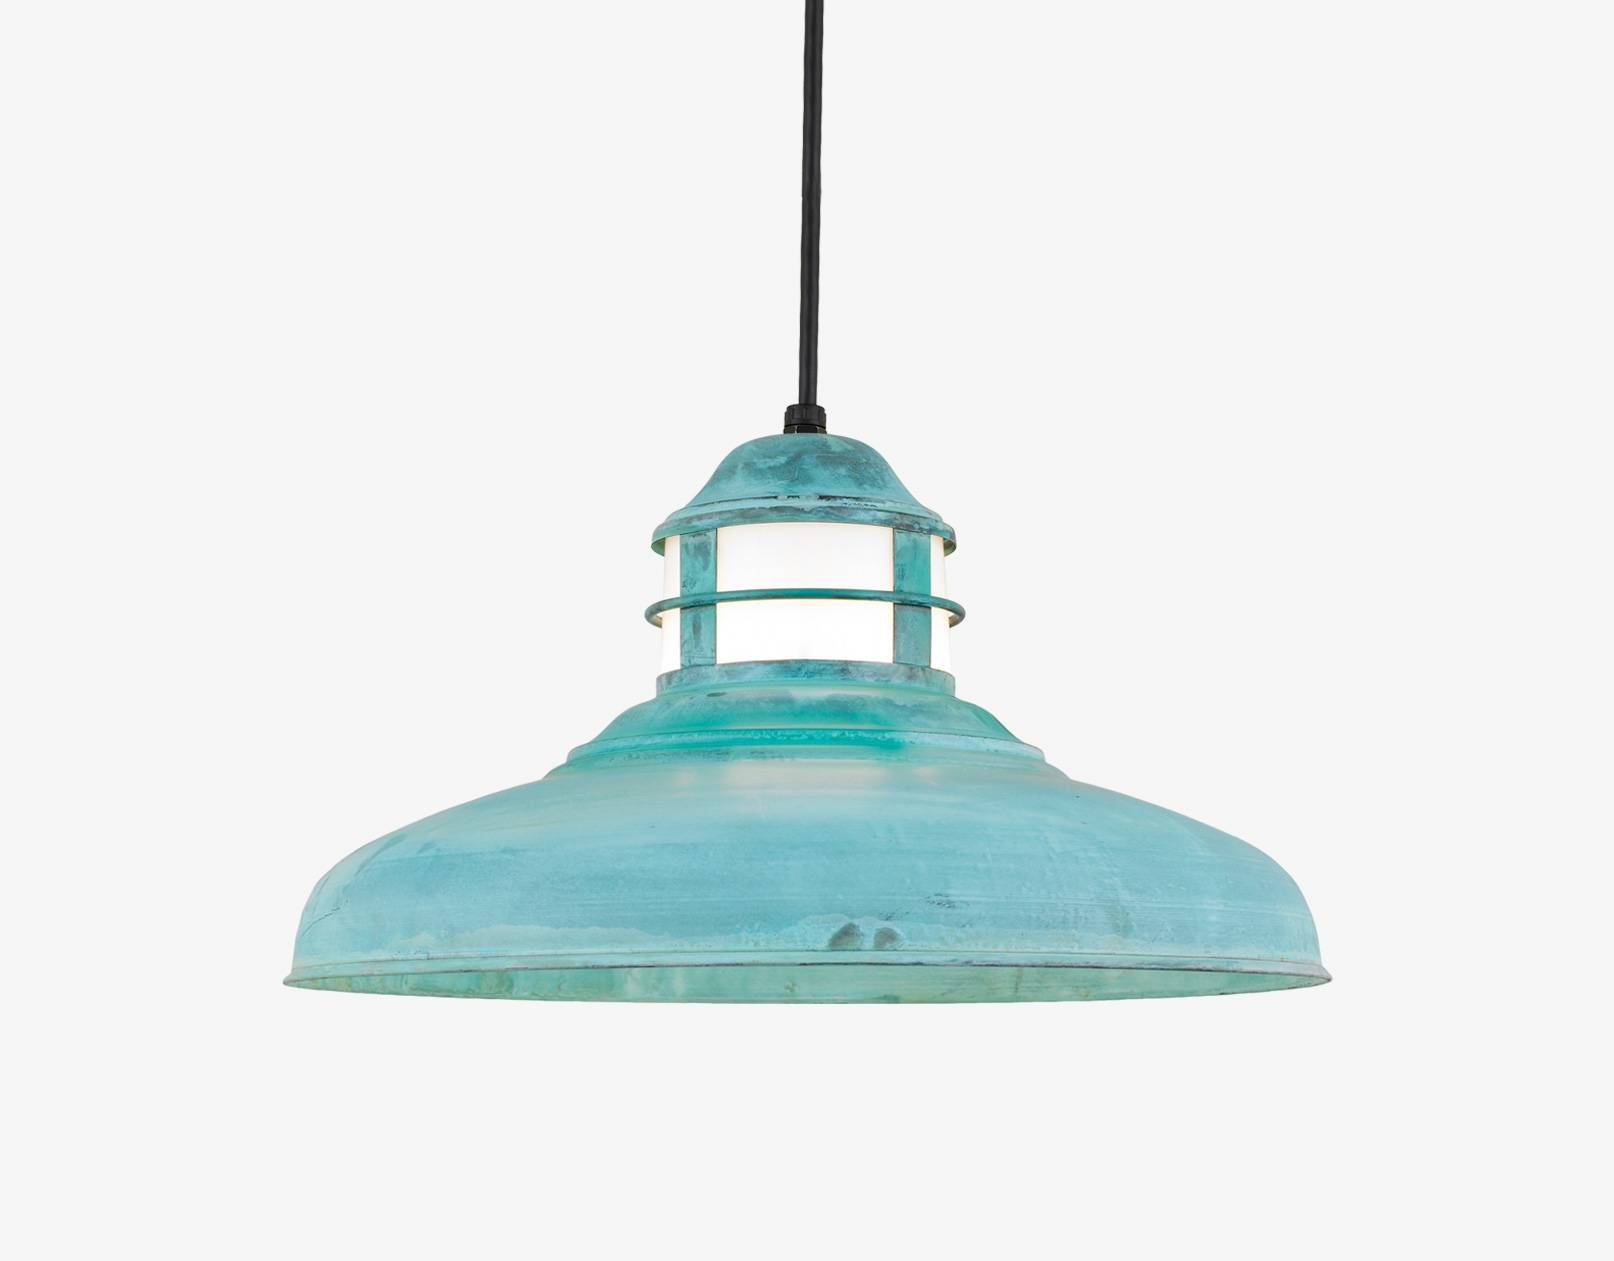 Lighting Fixtures For Your Interior Design Needs Intended For Commercial Hanging Lights Fixtures (View 12 of 15)